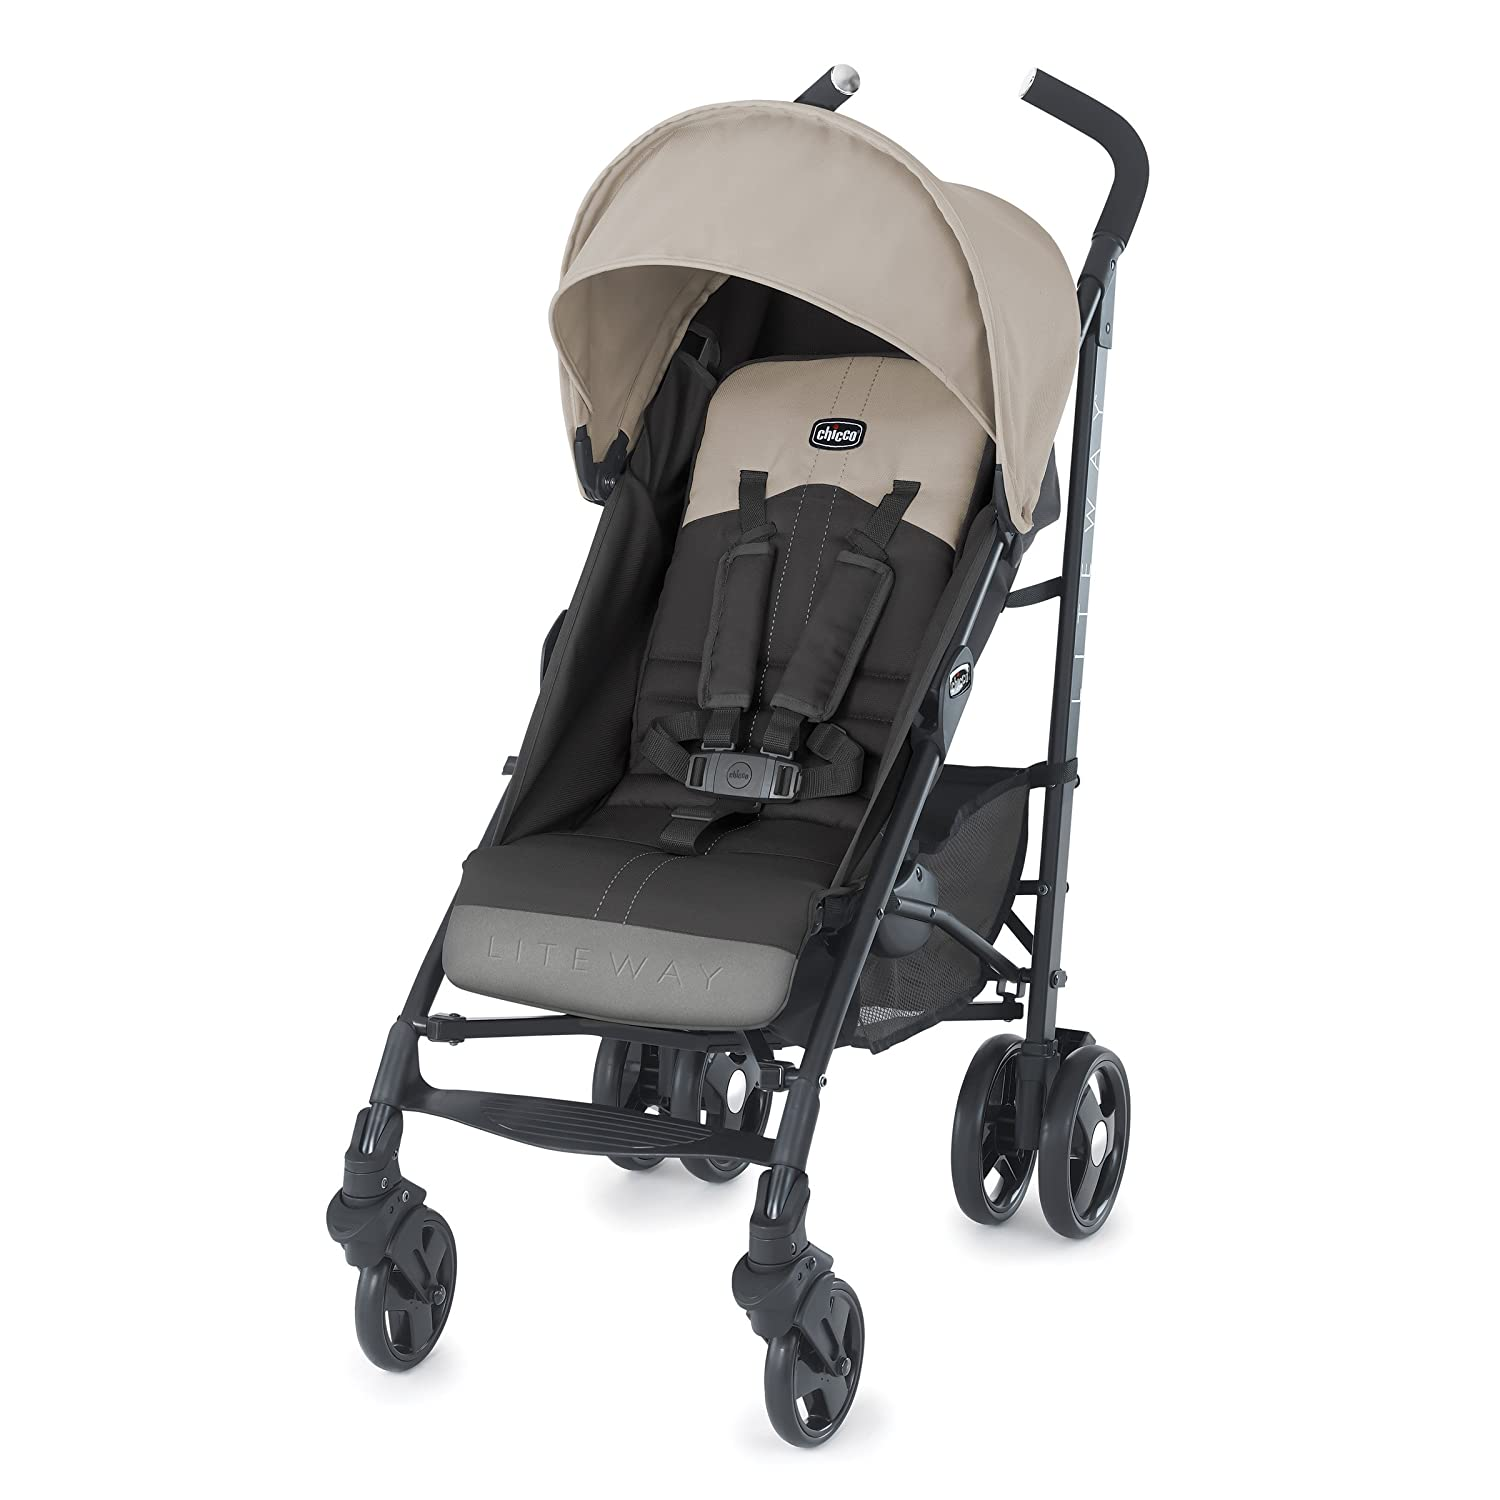 Stroller Too Short? Get the Best Umbrella Strollers for Tall ...